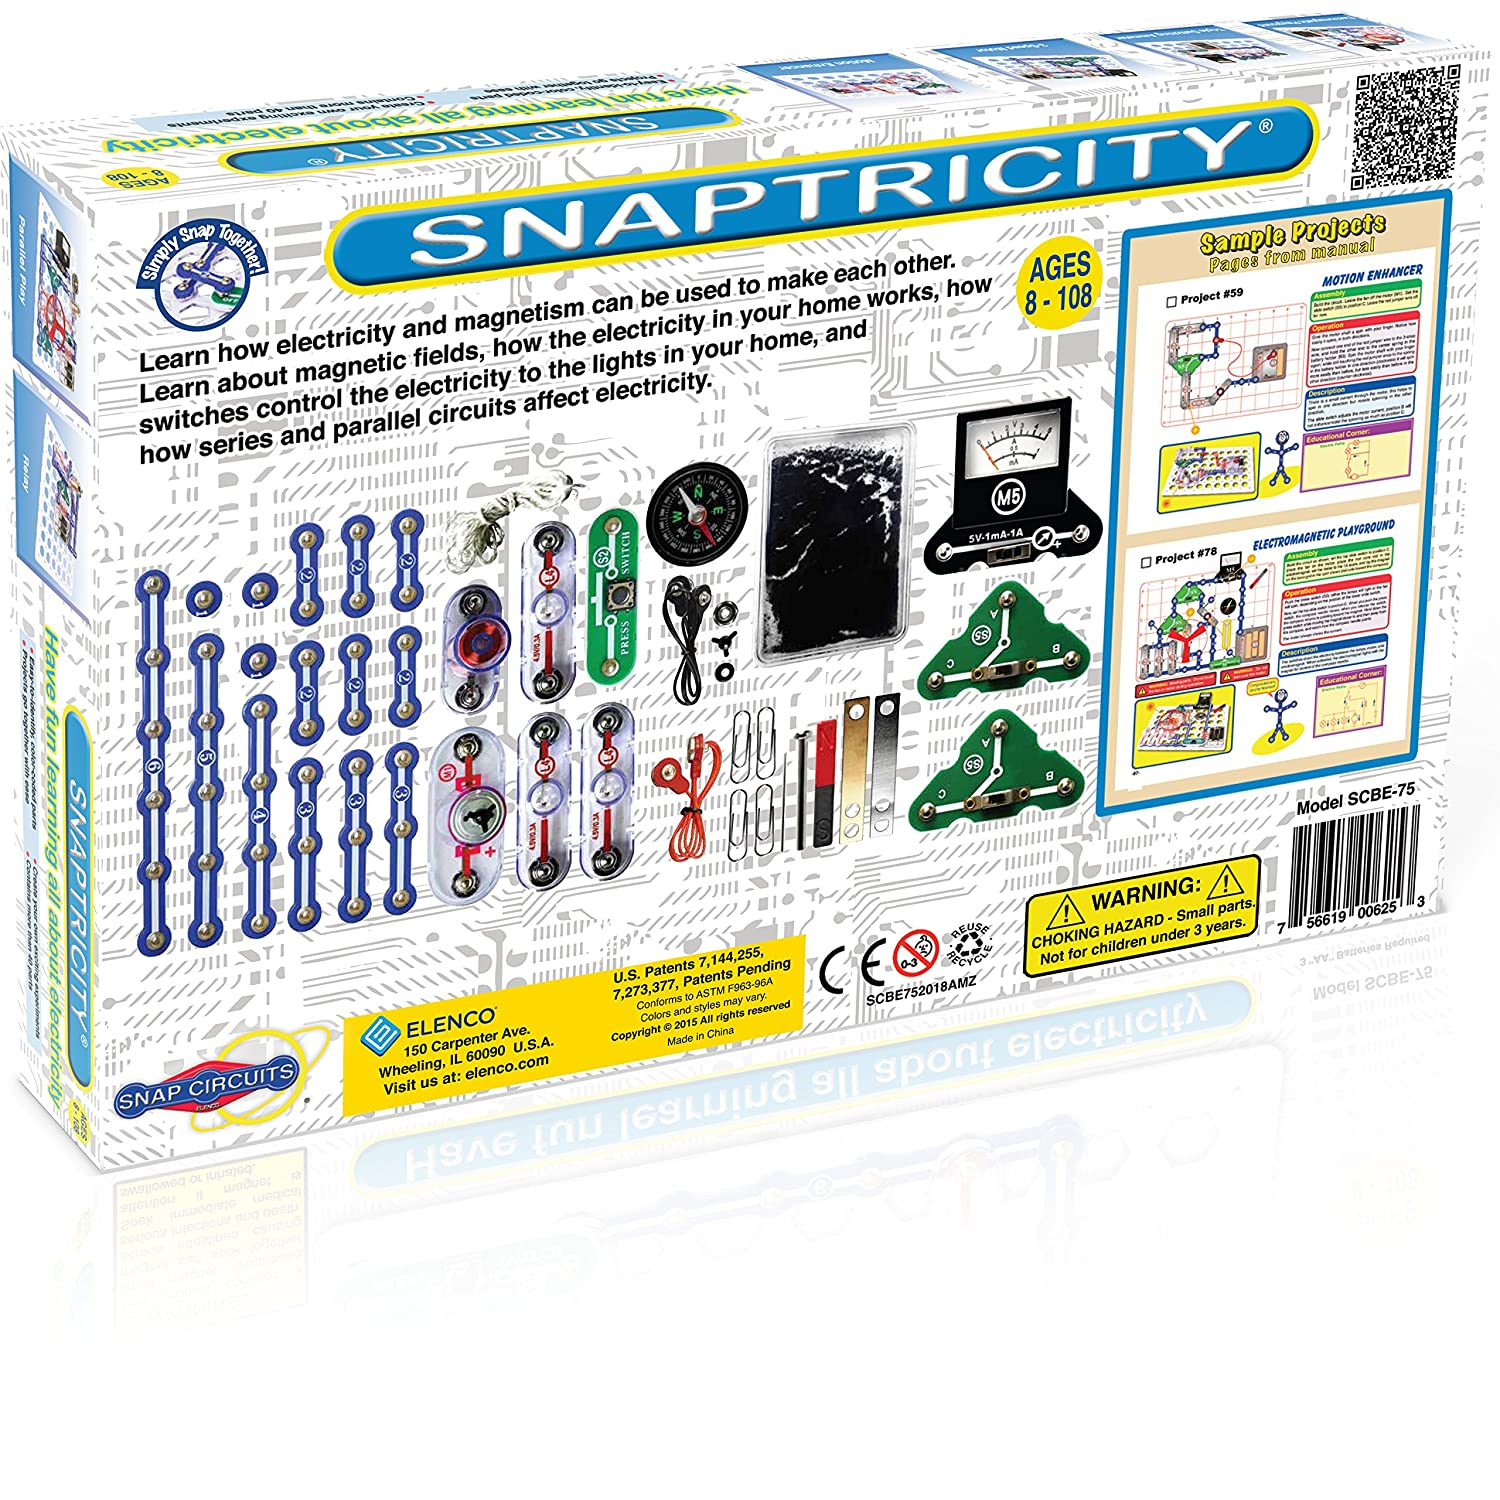 Amazon.com: Snap Circuits Snaptricity Electronics Discovery Kit ...